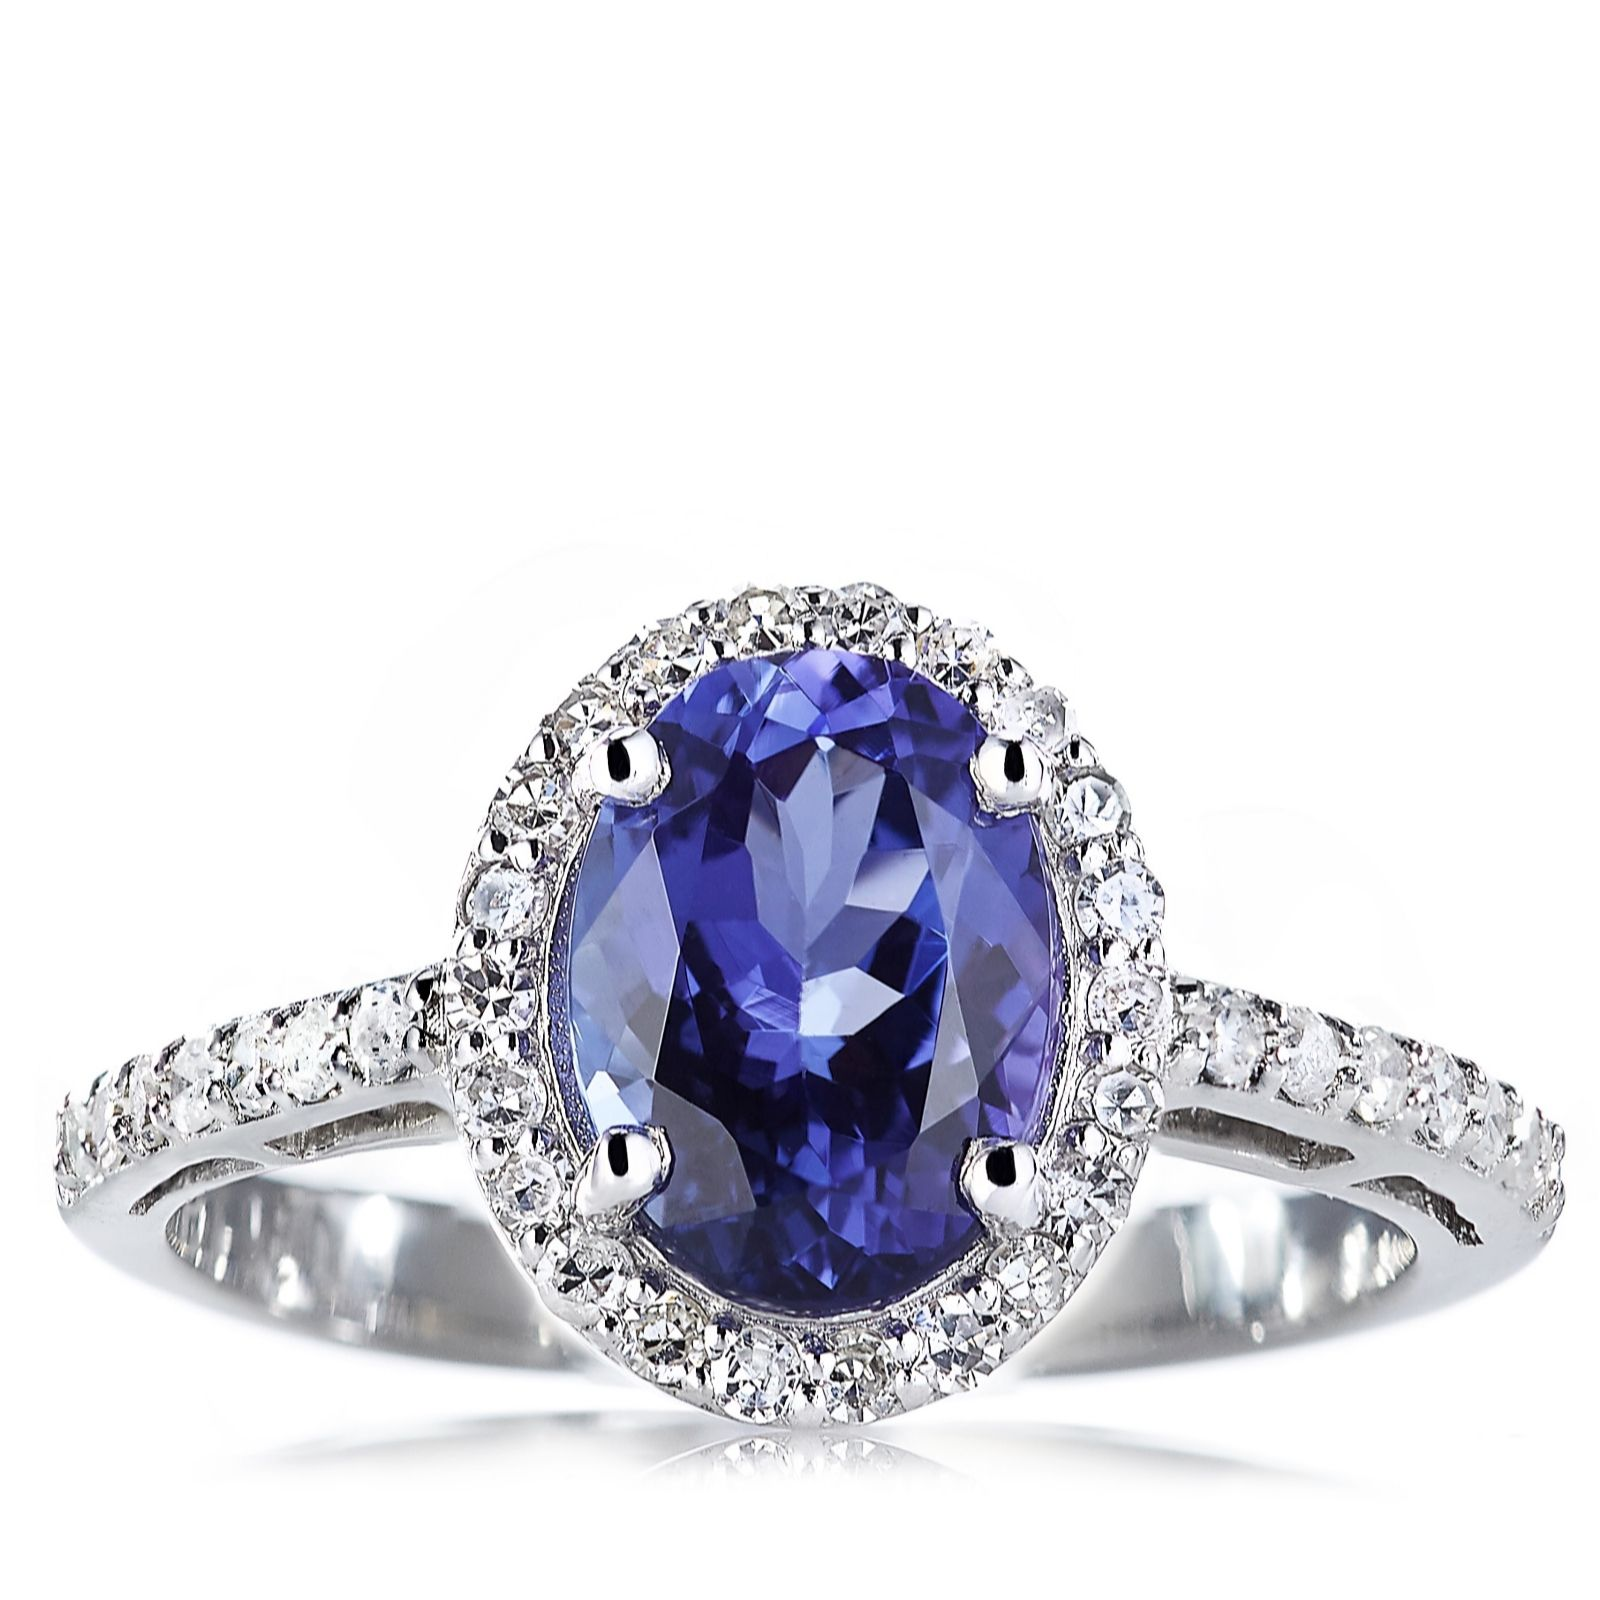 tanzanite rings 1.5ct aaaa tanzanite u0026 0.25ct diamond ring platinum - page 1 - qvc uk iitqcdb